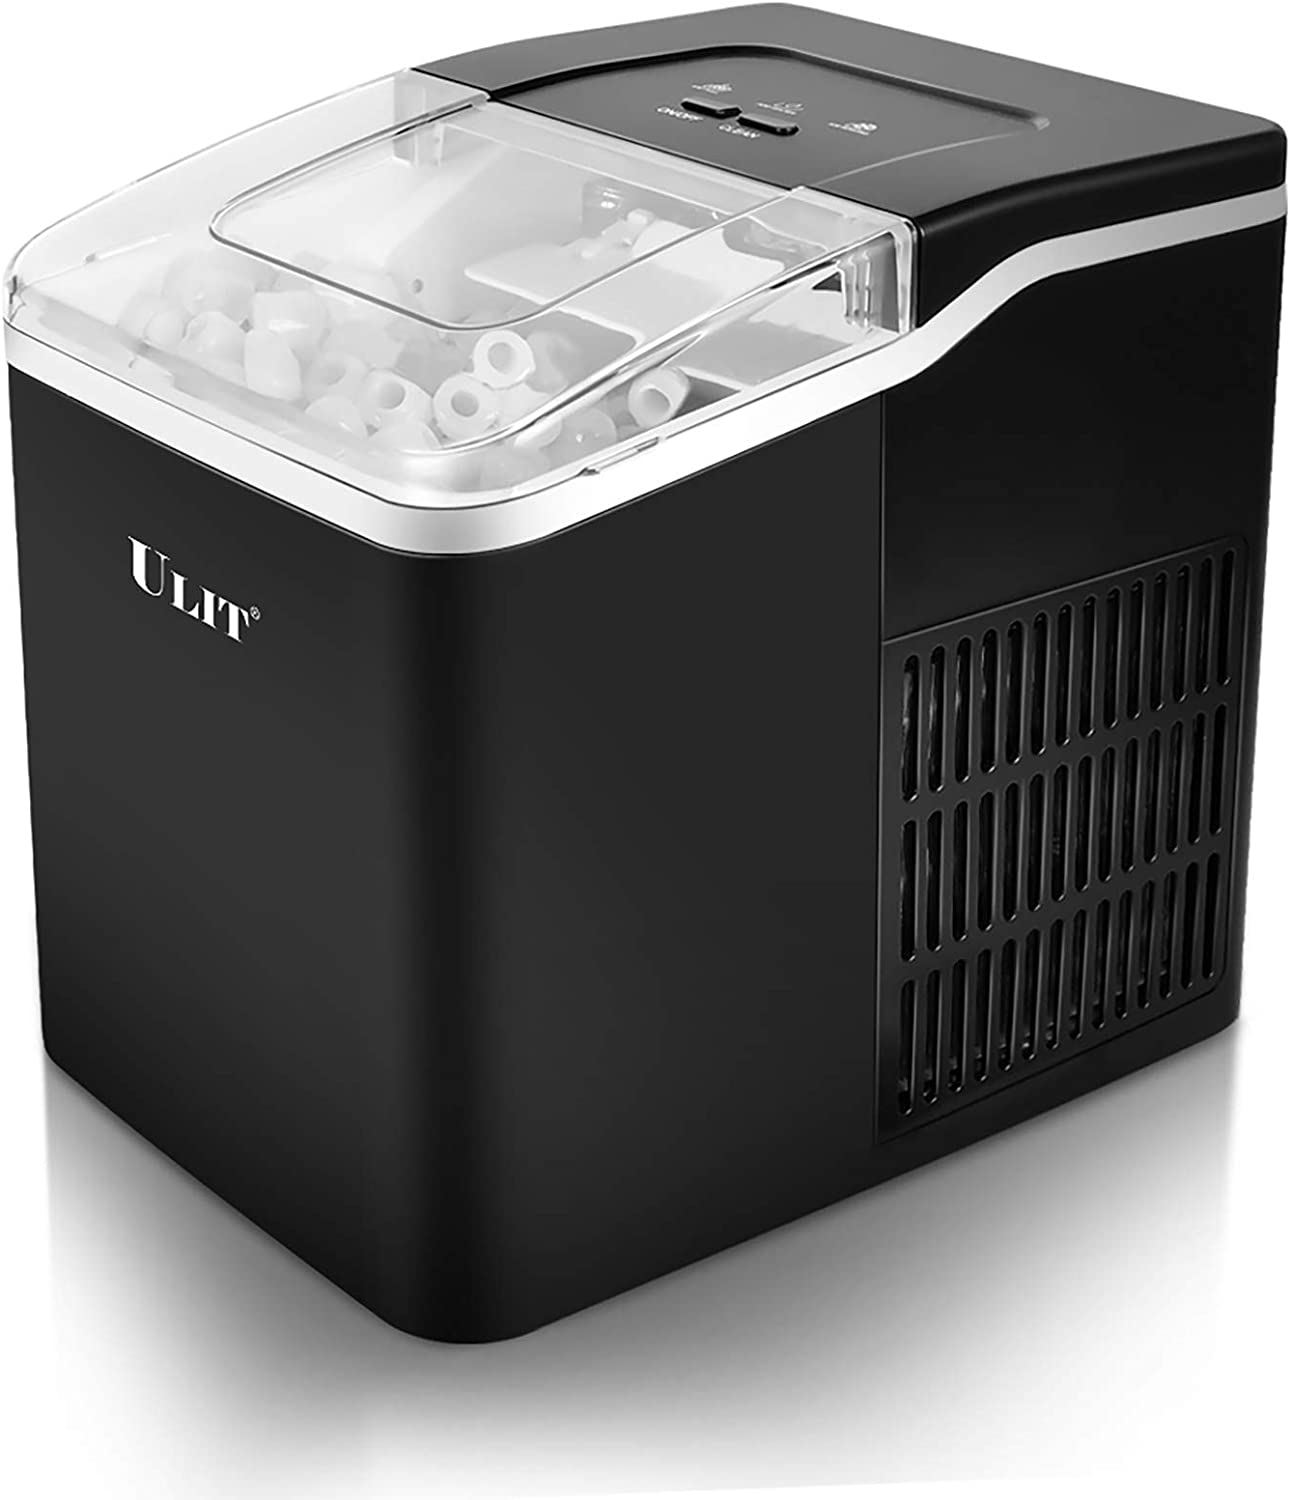 ULIT Ice Maker Countertop, Makes 26 lbs. Ice in 24 Hours,9 Ice Cubes Ready in 8 Minutes, Countertop Ice Maker machine with Ice Scoop and Basket, fit for home party, 1.6 lbs. Ice Storage (Black)